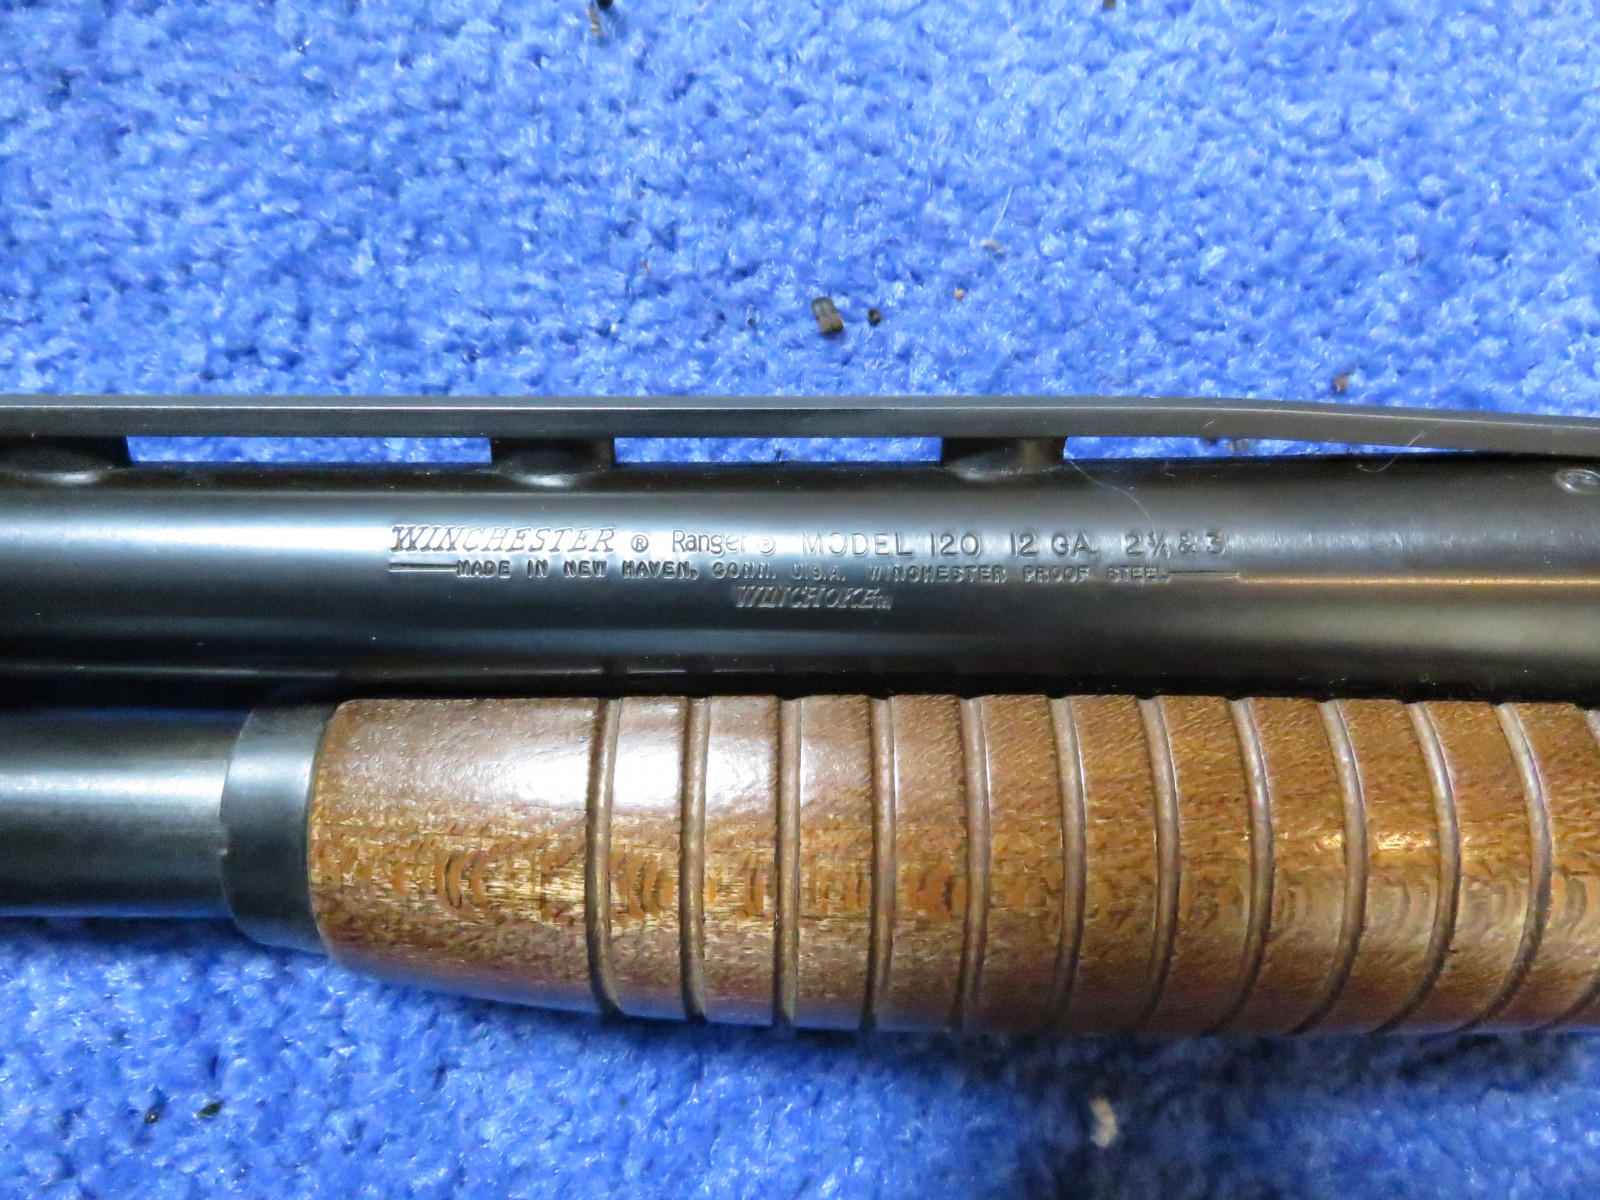 Winchester Model 120 12 Gauge Shotgun - Image 3